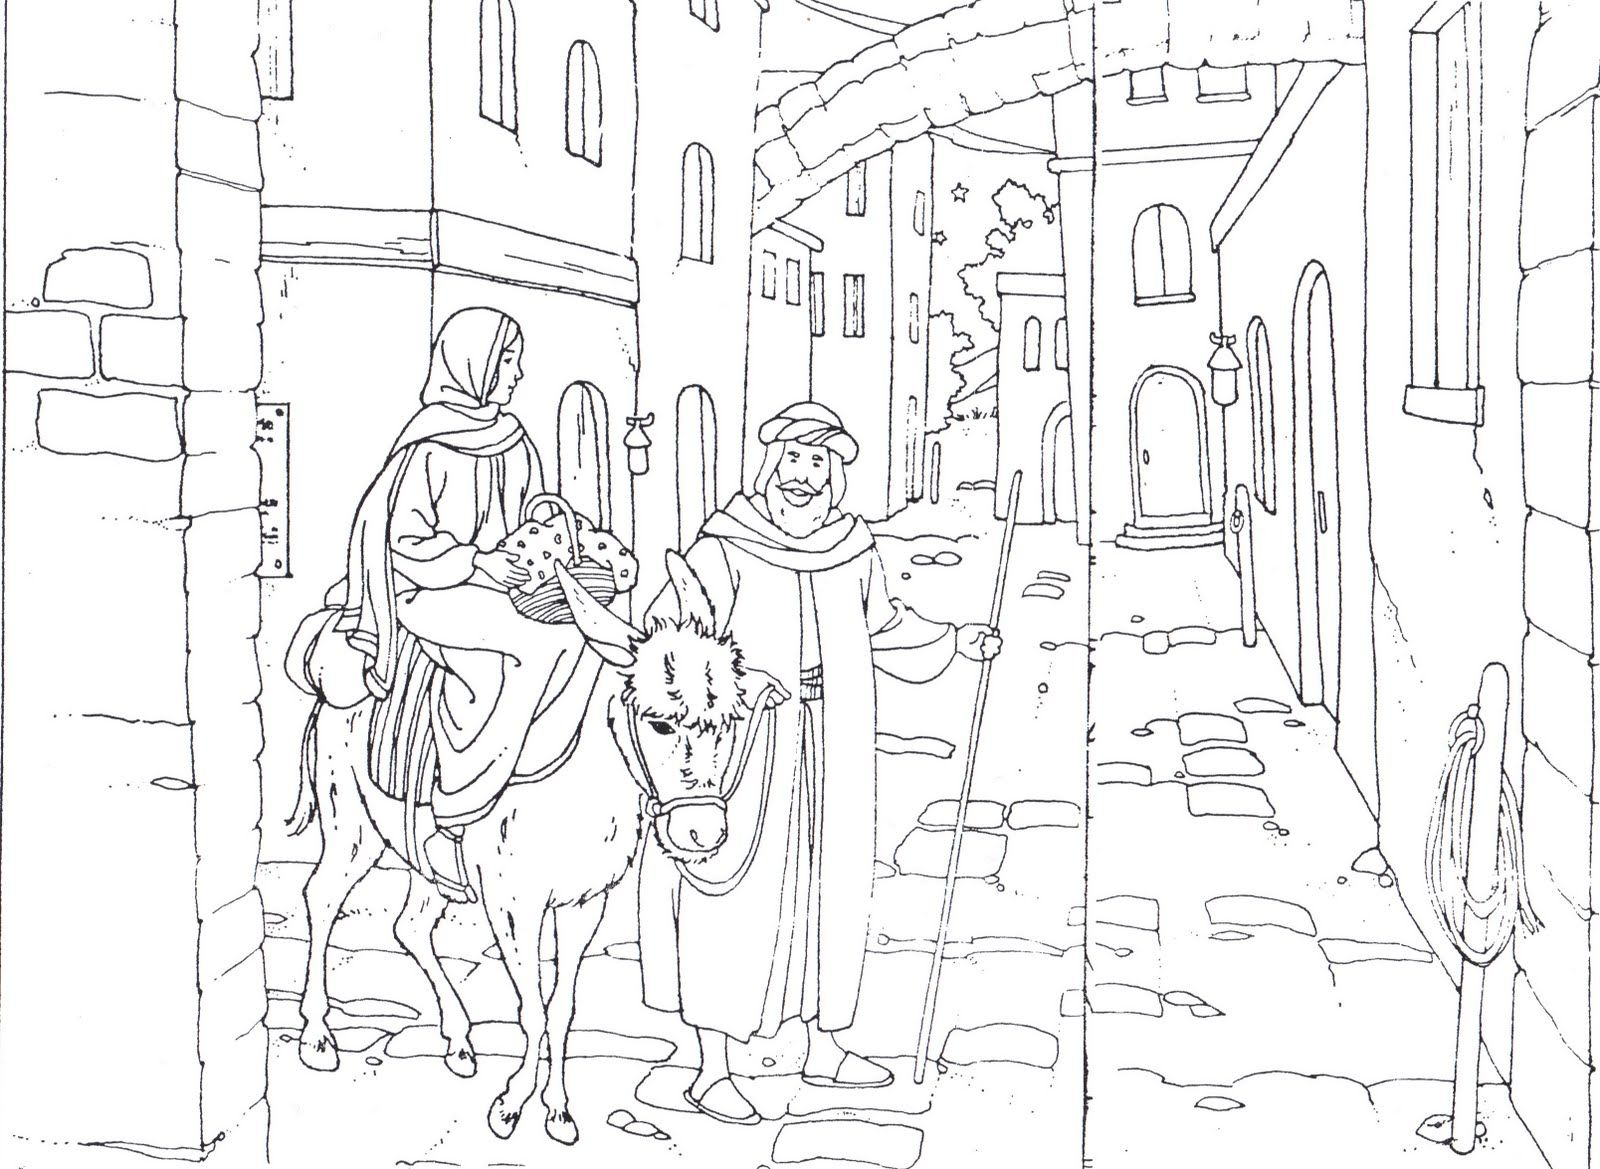 Coloring sheet mary and joseph bethlehem - Find This Pin And More On Catequesis By Anyabdala58 Joseph Mary Travel To Bethlehem